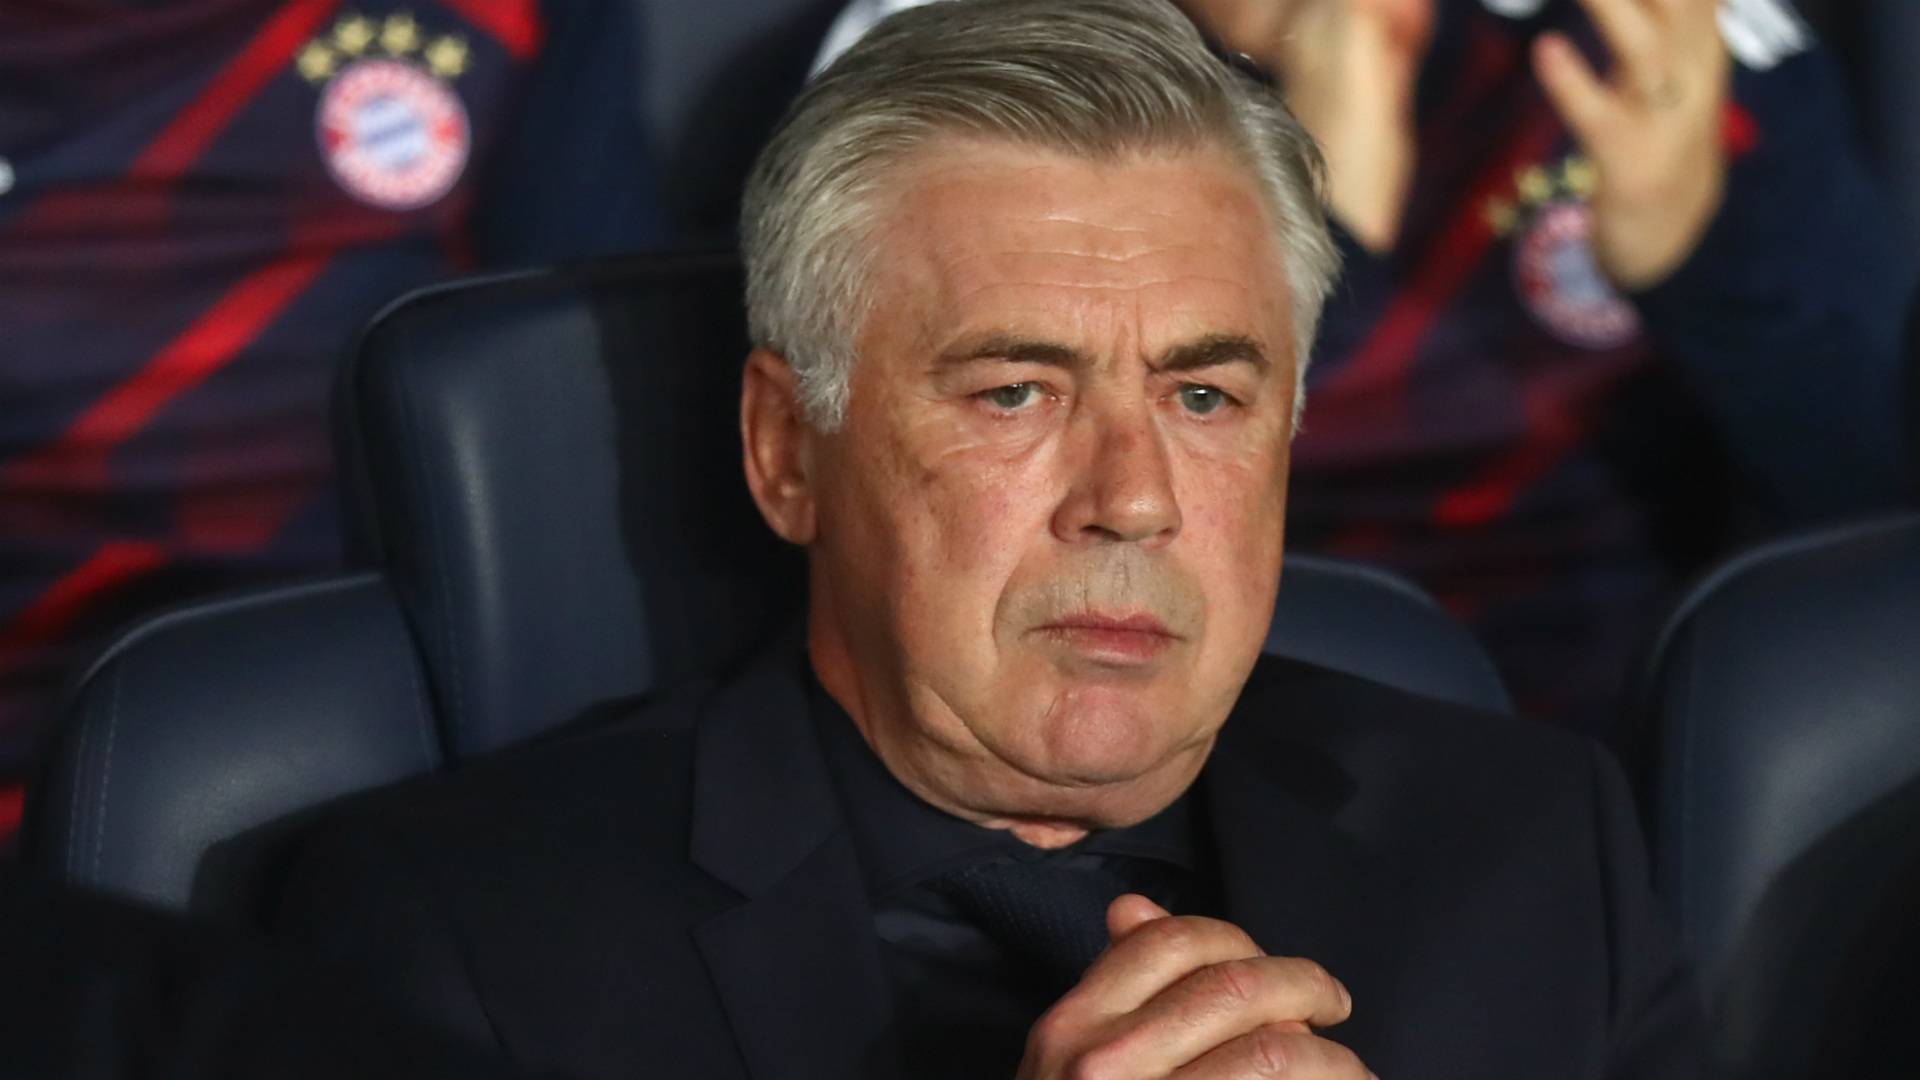 Bayern Munich sack coach Carlo Ancelotti after PSG humiliation